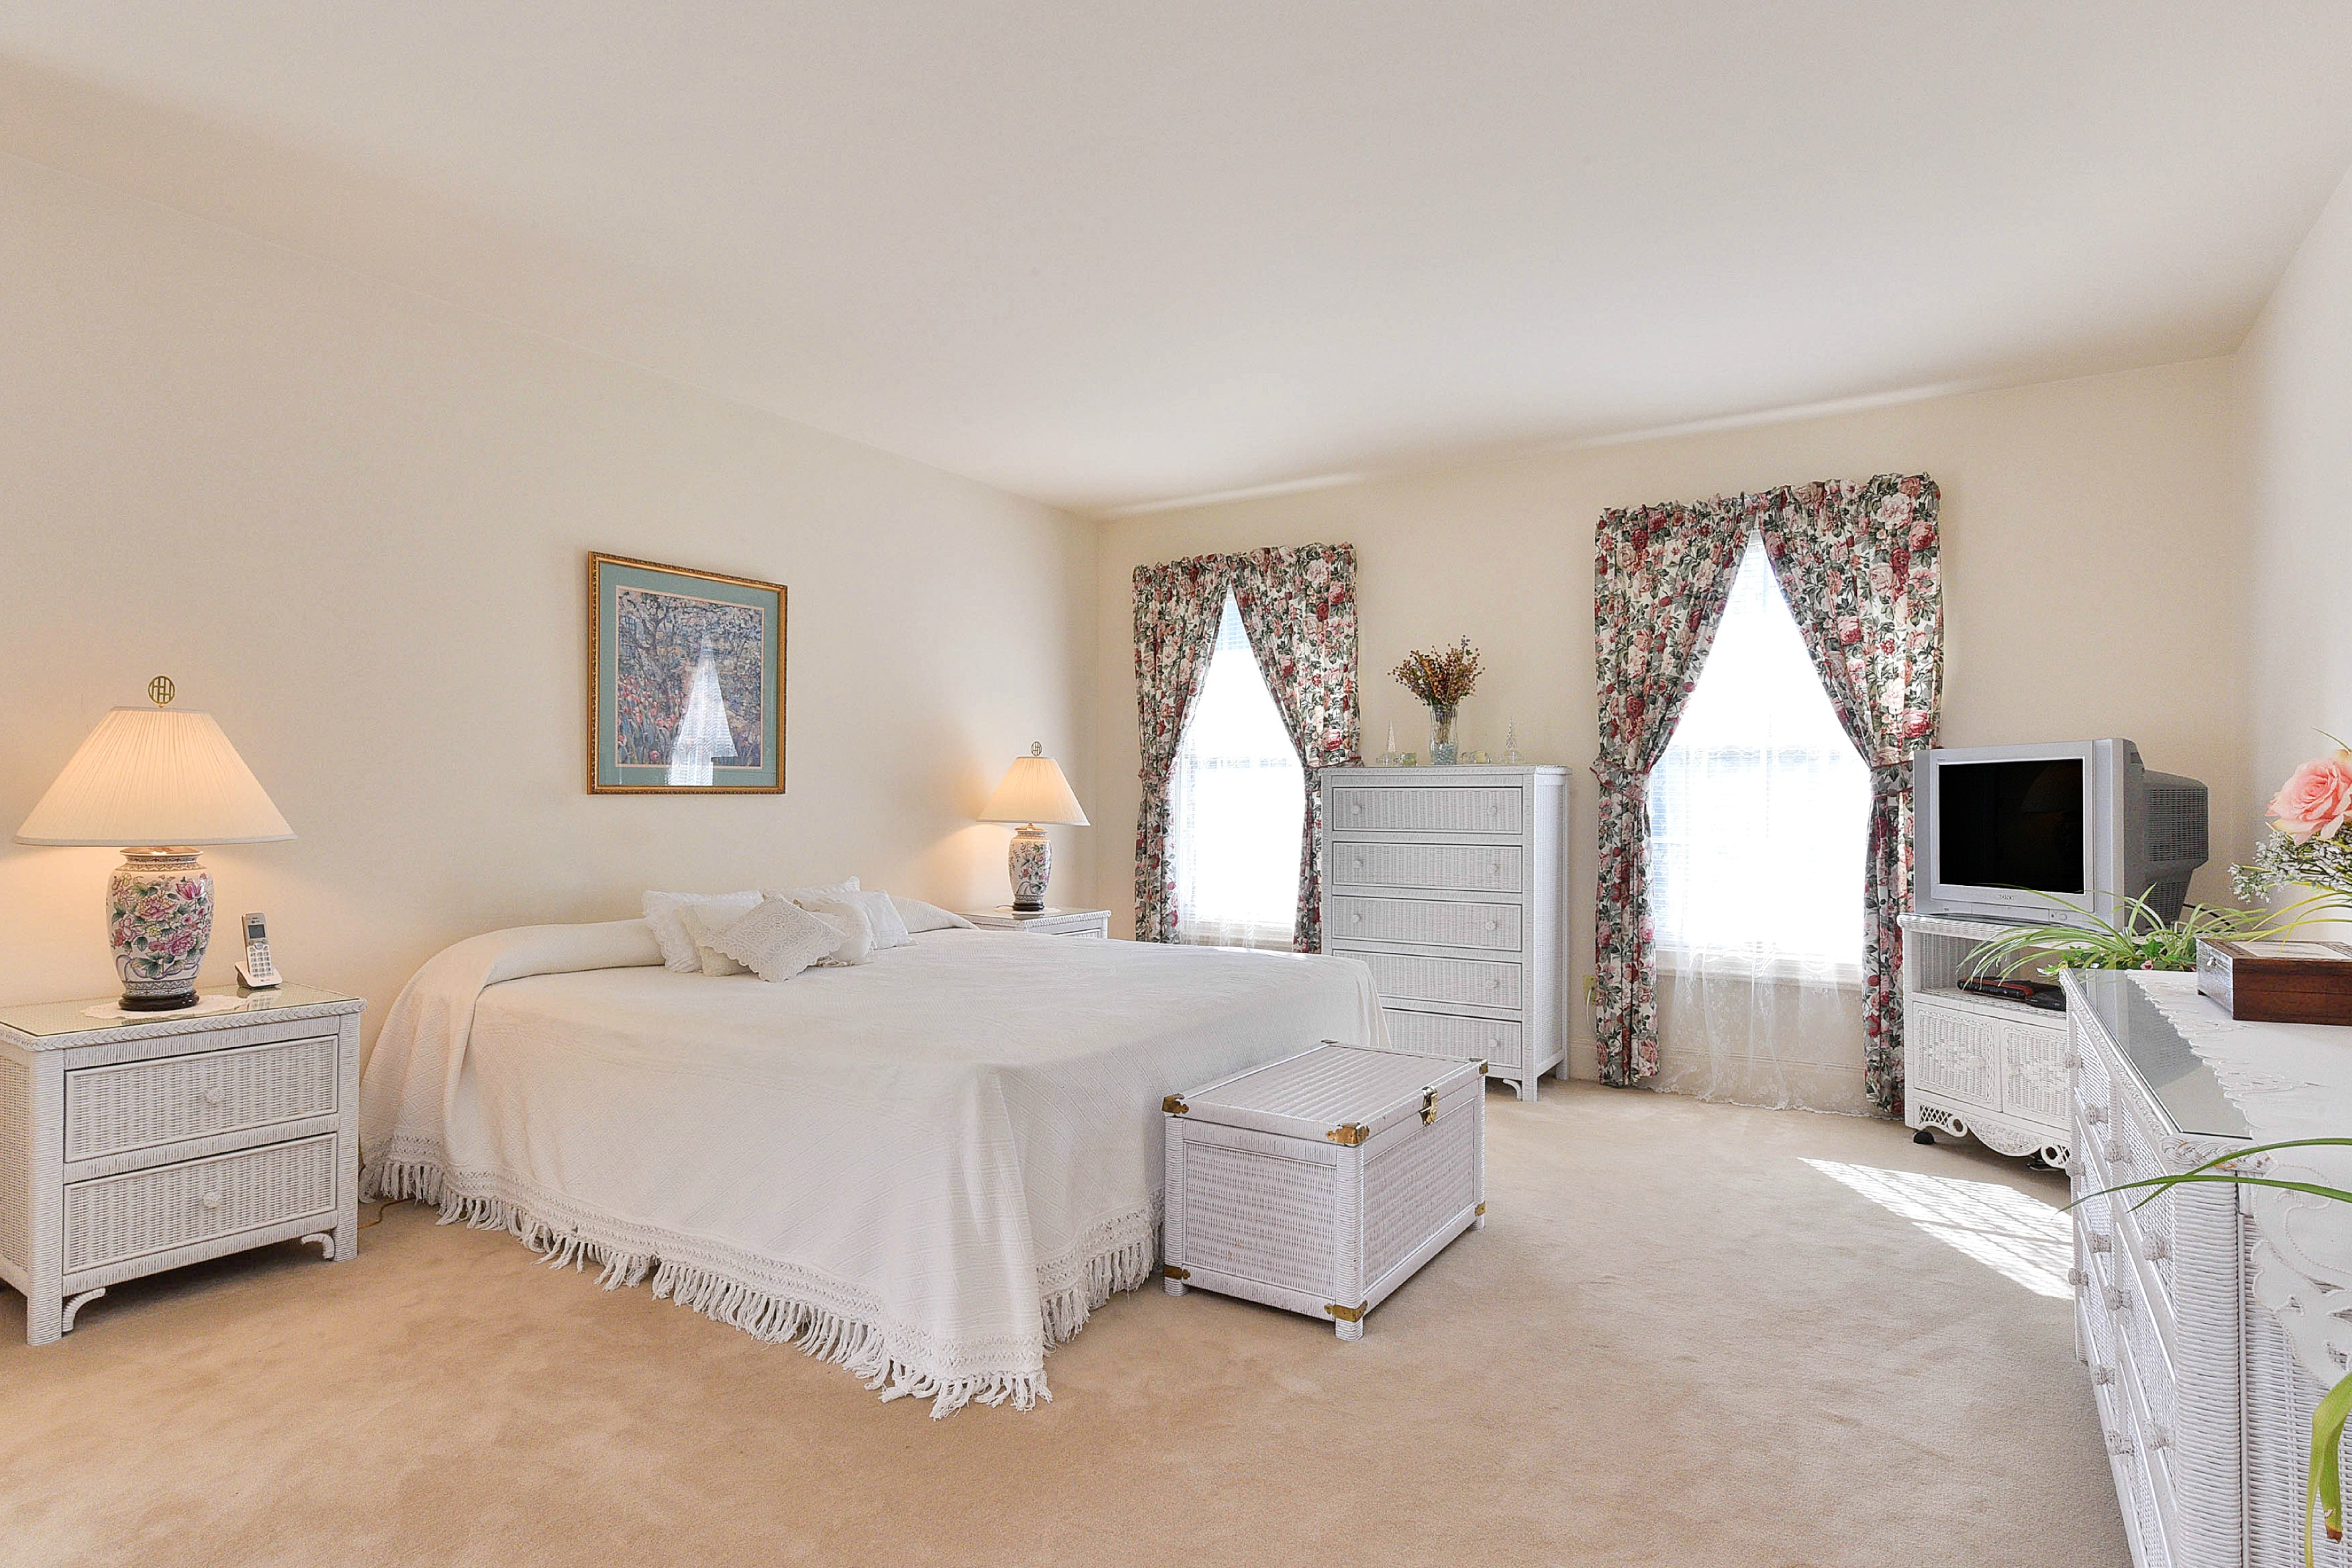 Property Of EXECUTIVE FURNISHED RENTAL